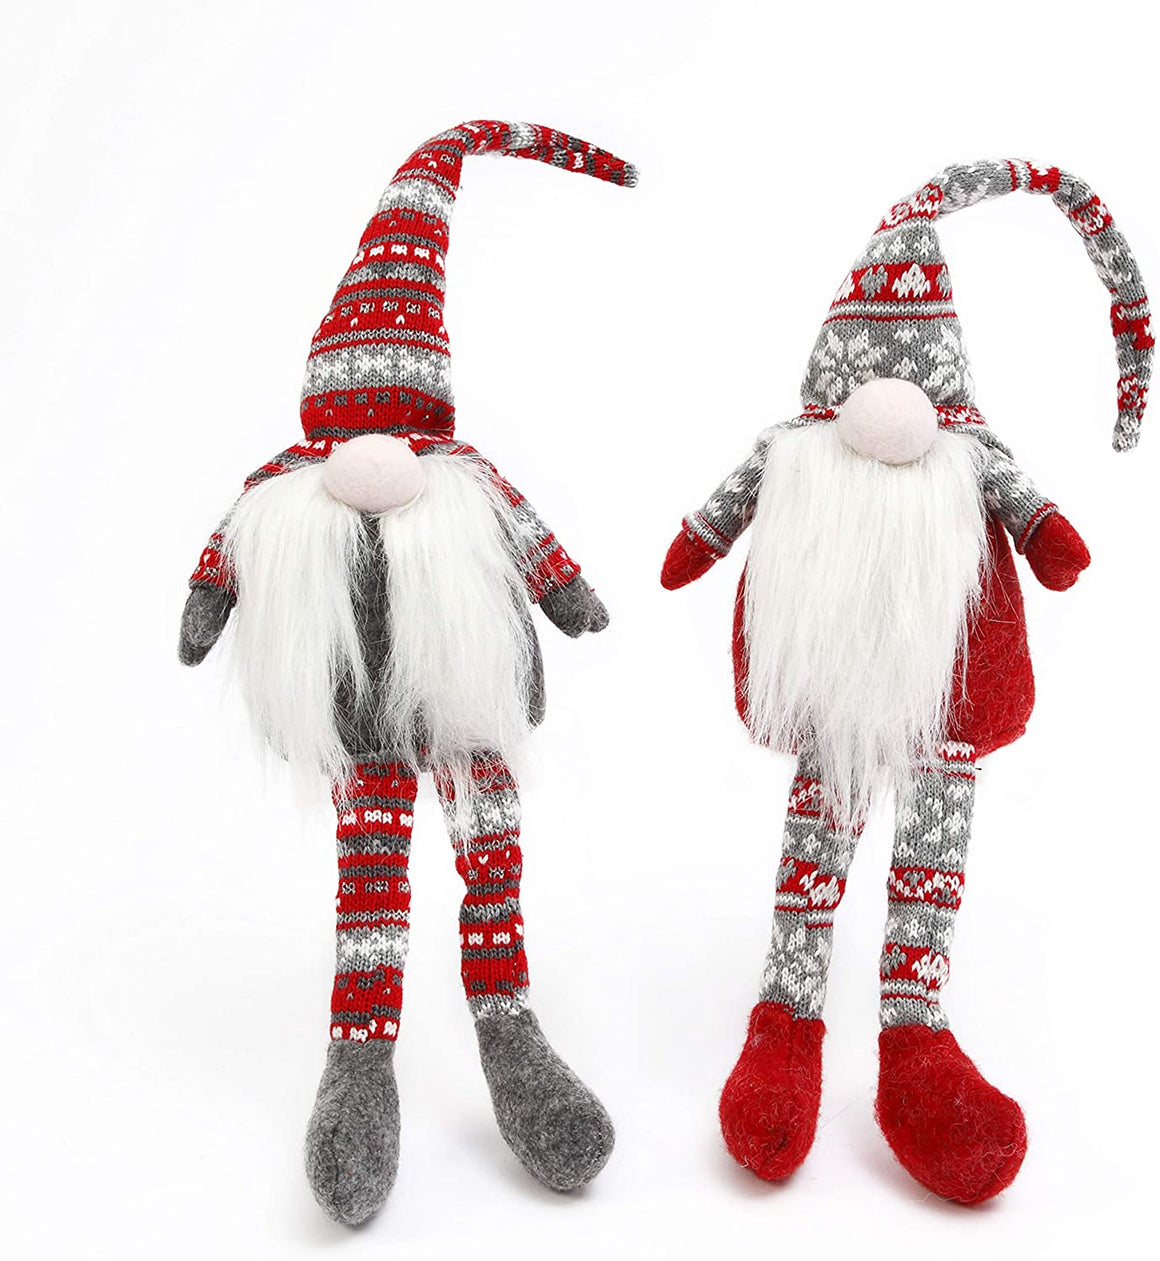 Set of 2 Gnome Shelf Sitters, Plush Christmas Holiday Figurines in Knitted Red, White and Grey